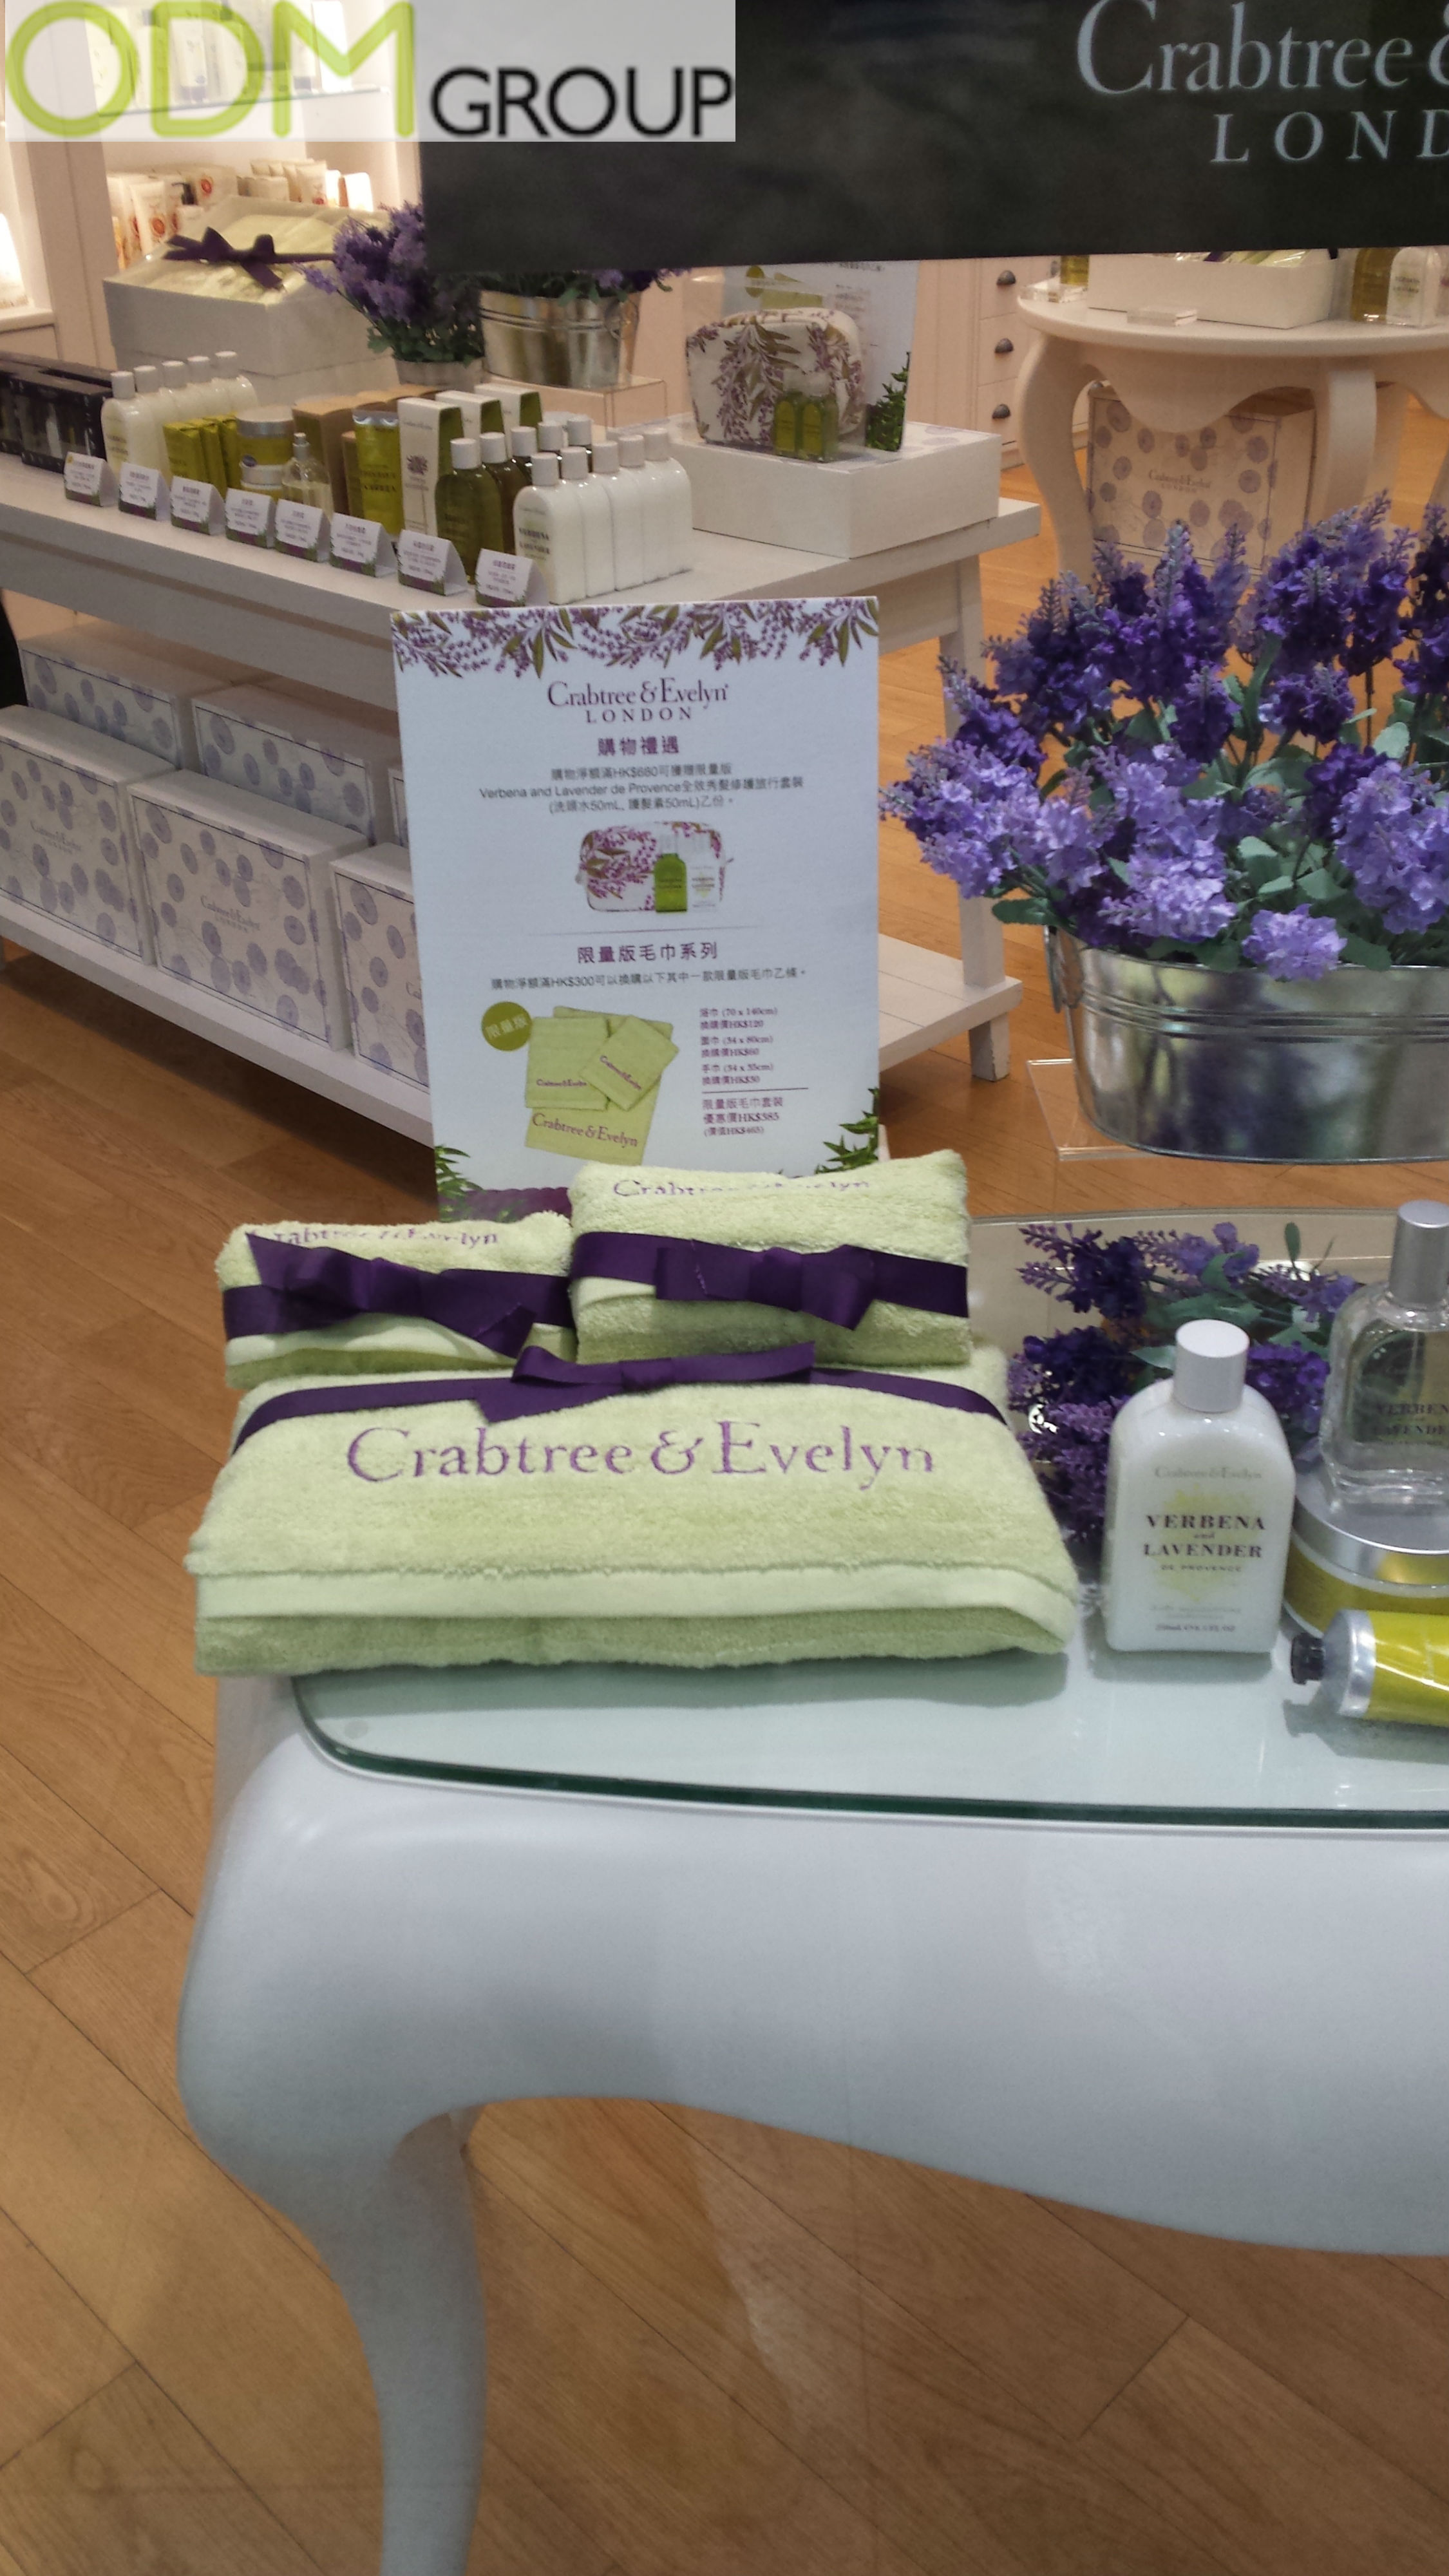 Promo Gift Giving: Crabtree and Evelyn Branded towels